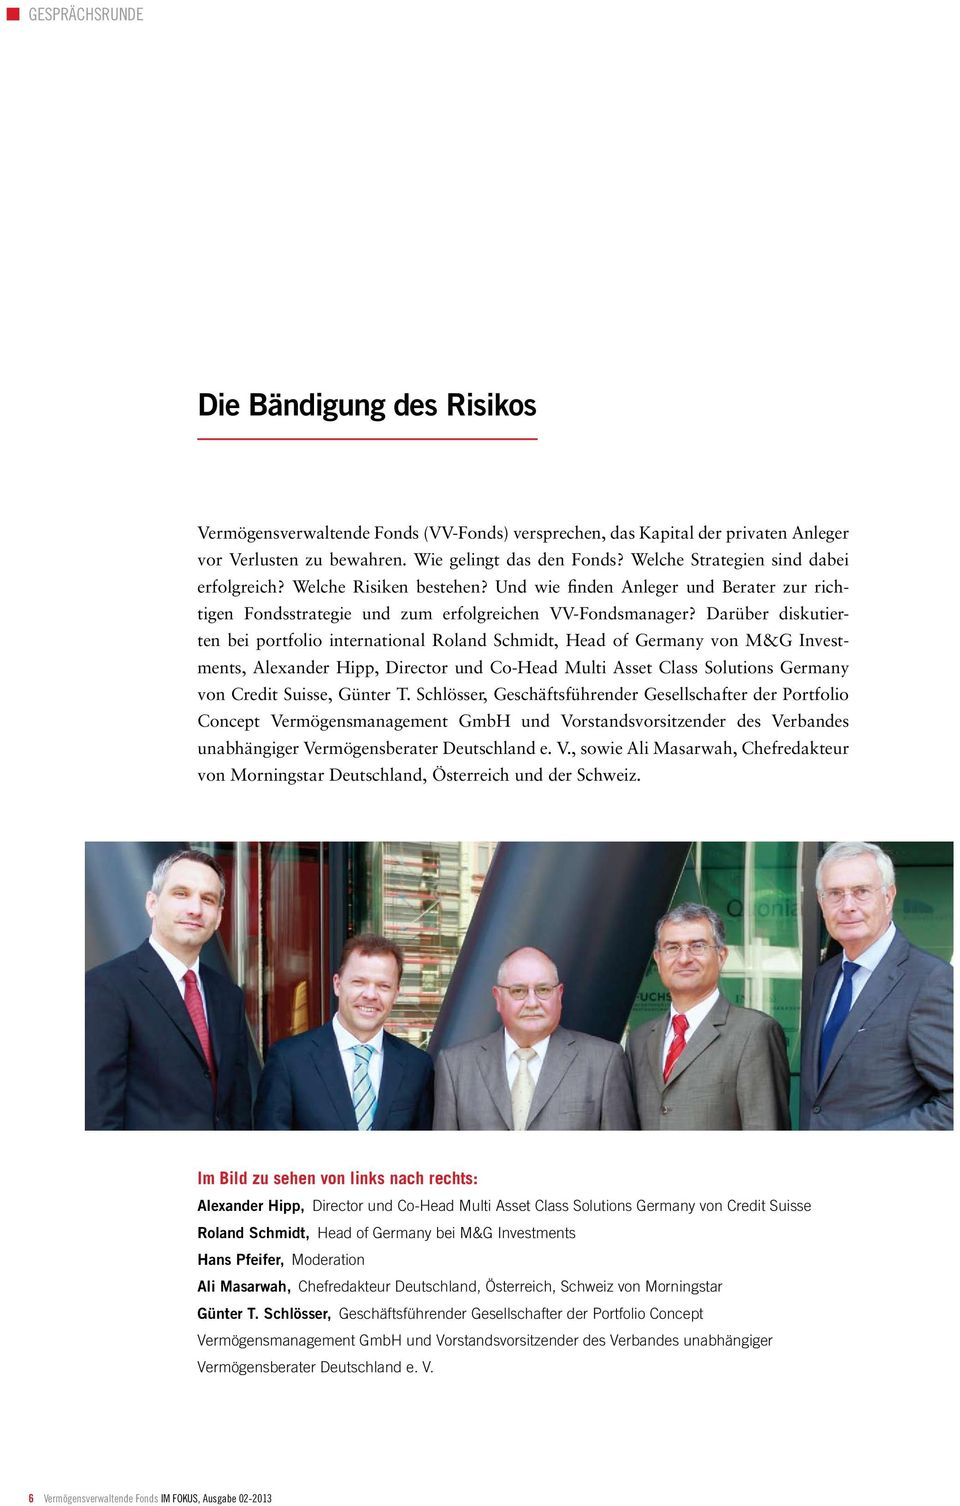 Darüber diskutierten bei portfolio international Roland Schmidt, Head of Germany von M&G Investments, Alexander Hipp, Director und Co-Head Multi Asset Class Solutions Germany von Credit Suisse,